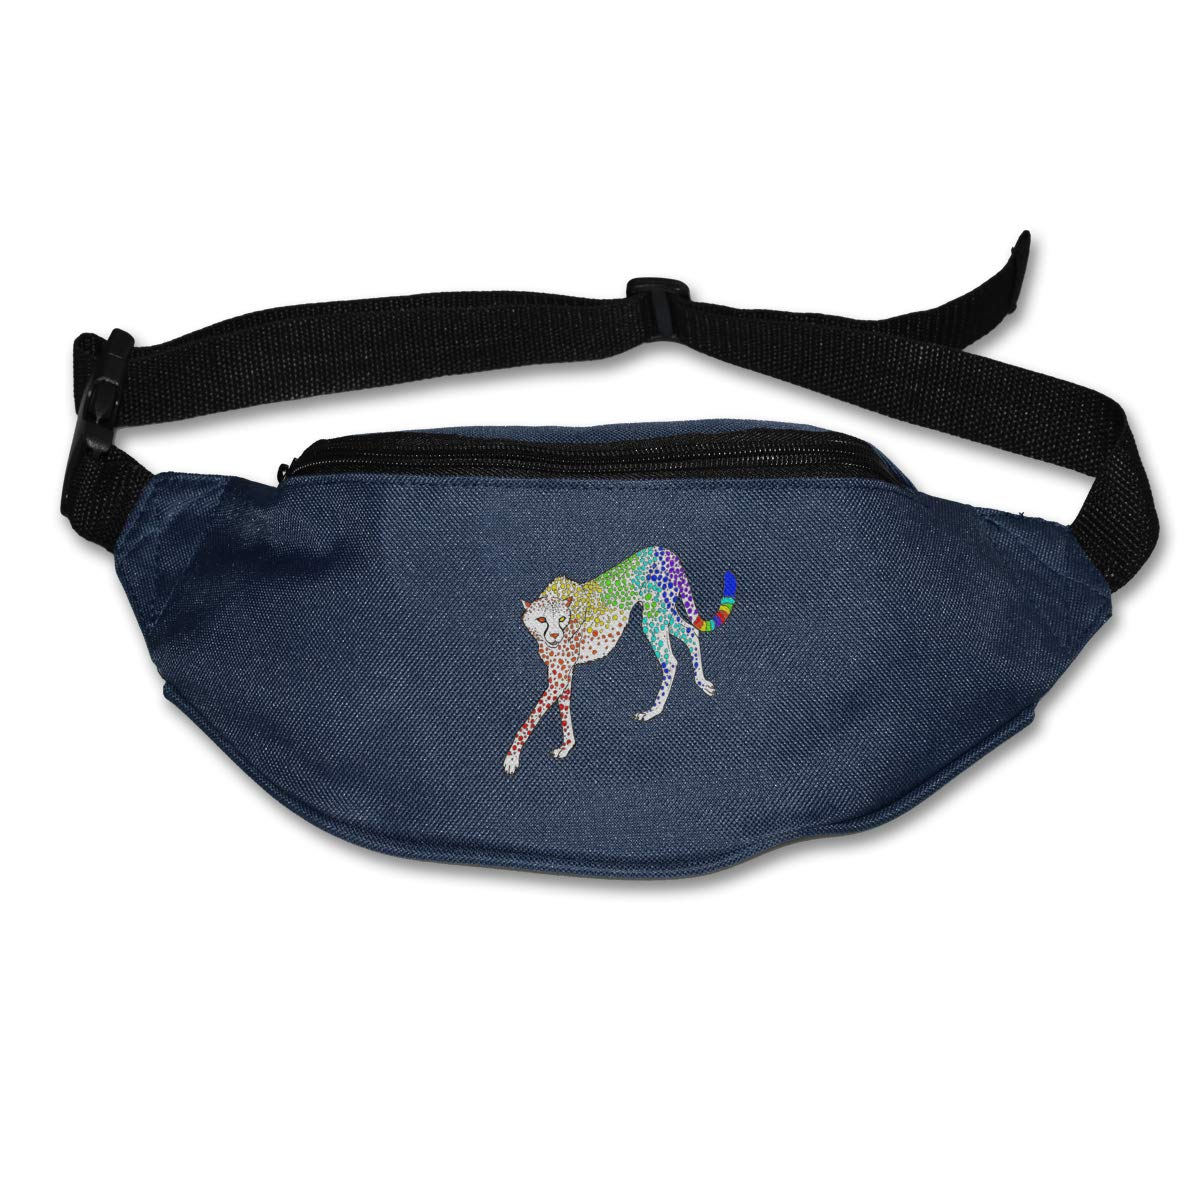 Cheetah Colorful Funny Sport Waist Pack Fanny Pack Adjustable For Travel